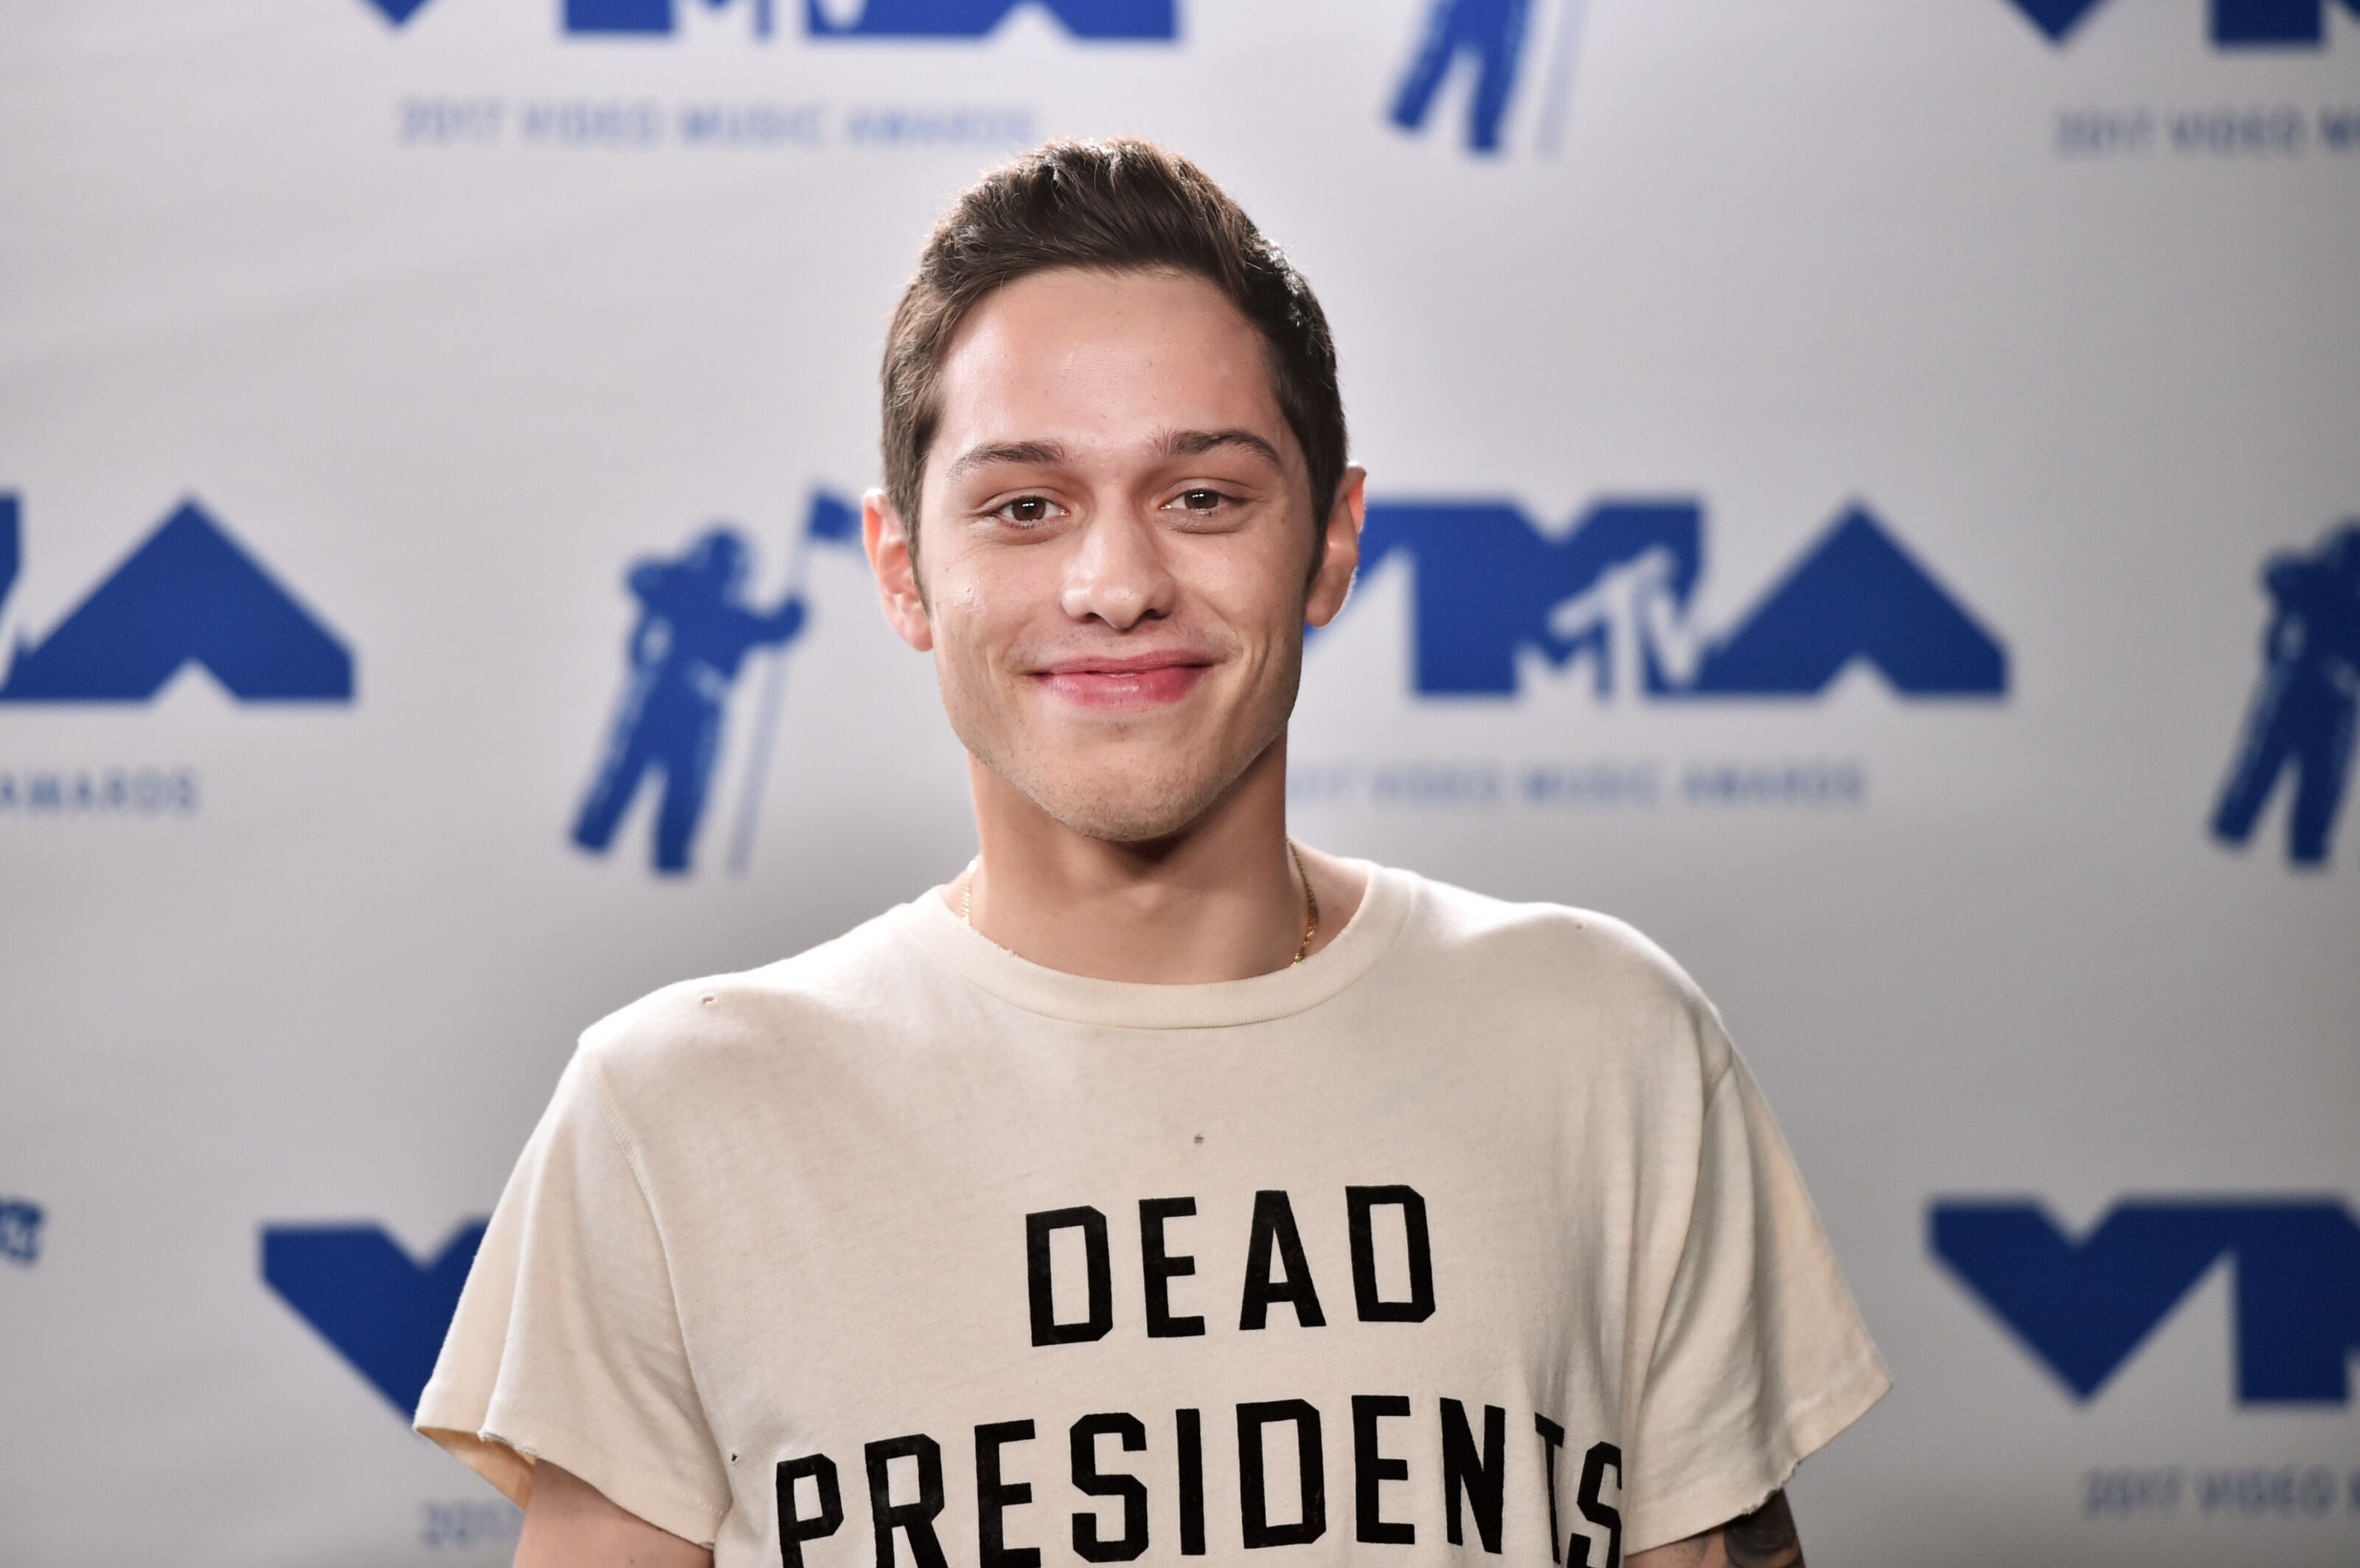 Pete Davidson's Saturday Night Live absence explained